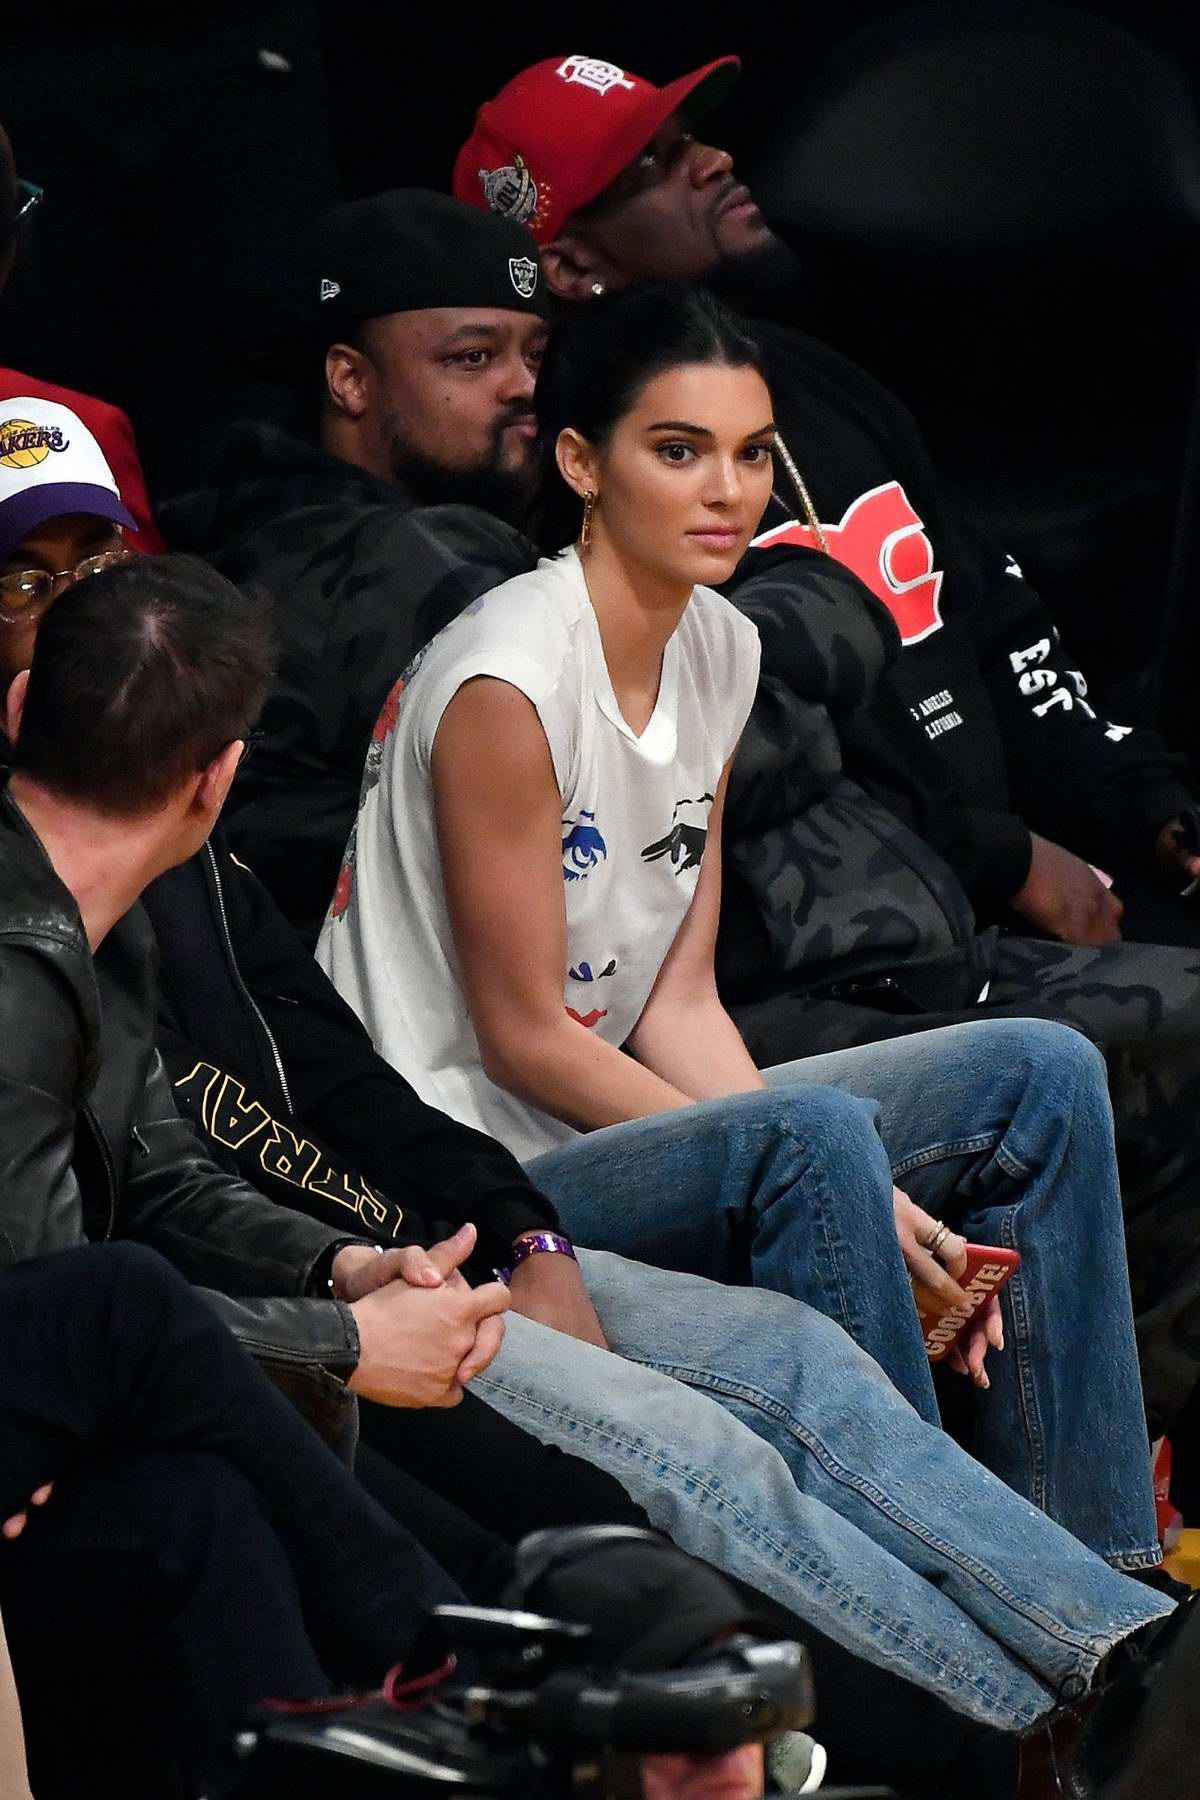 Kendall Jenner attends the Los Angeles Lakers vs the Houston Rockets game at the Staples Center in Los Angeles